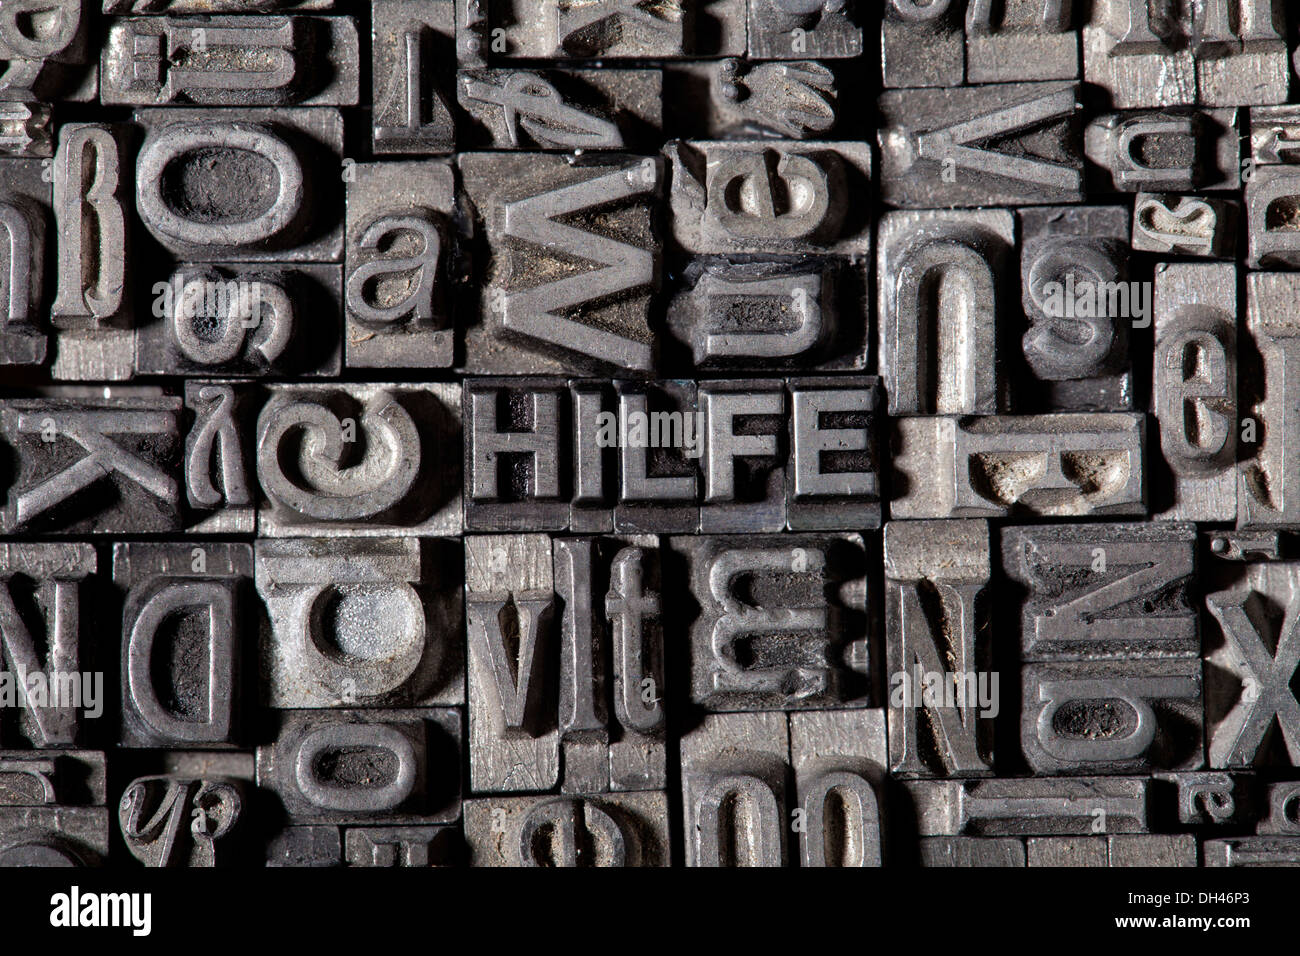 Old lead letters forming the word HILFE, German for help - Stock Image